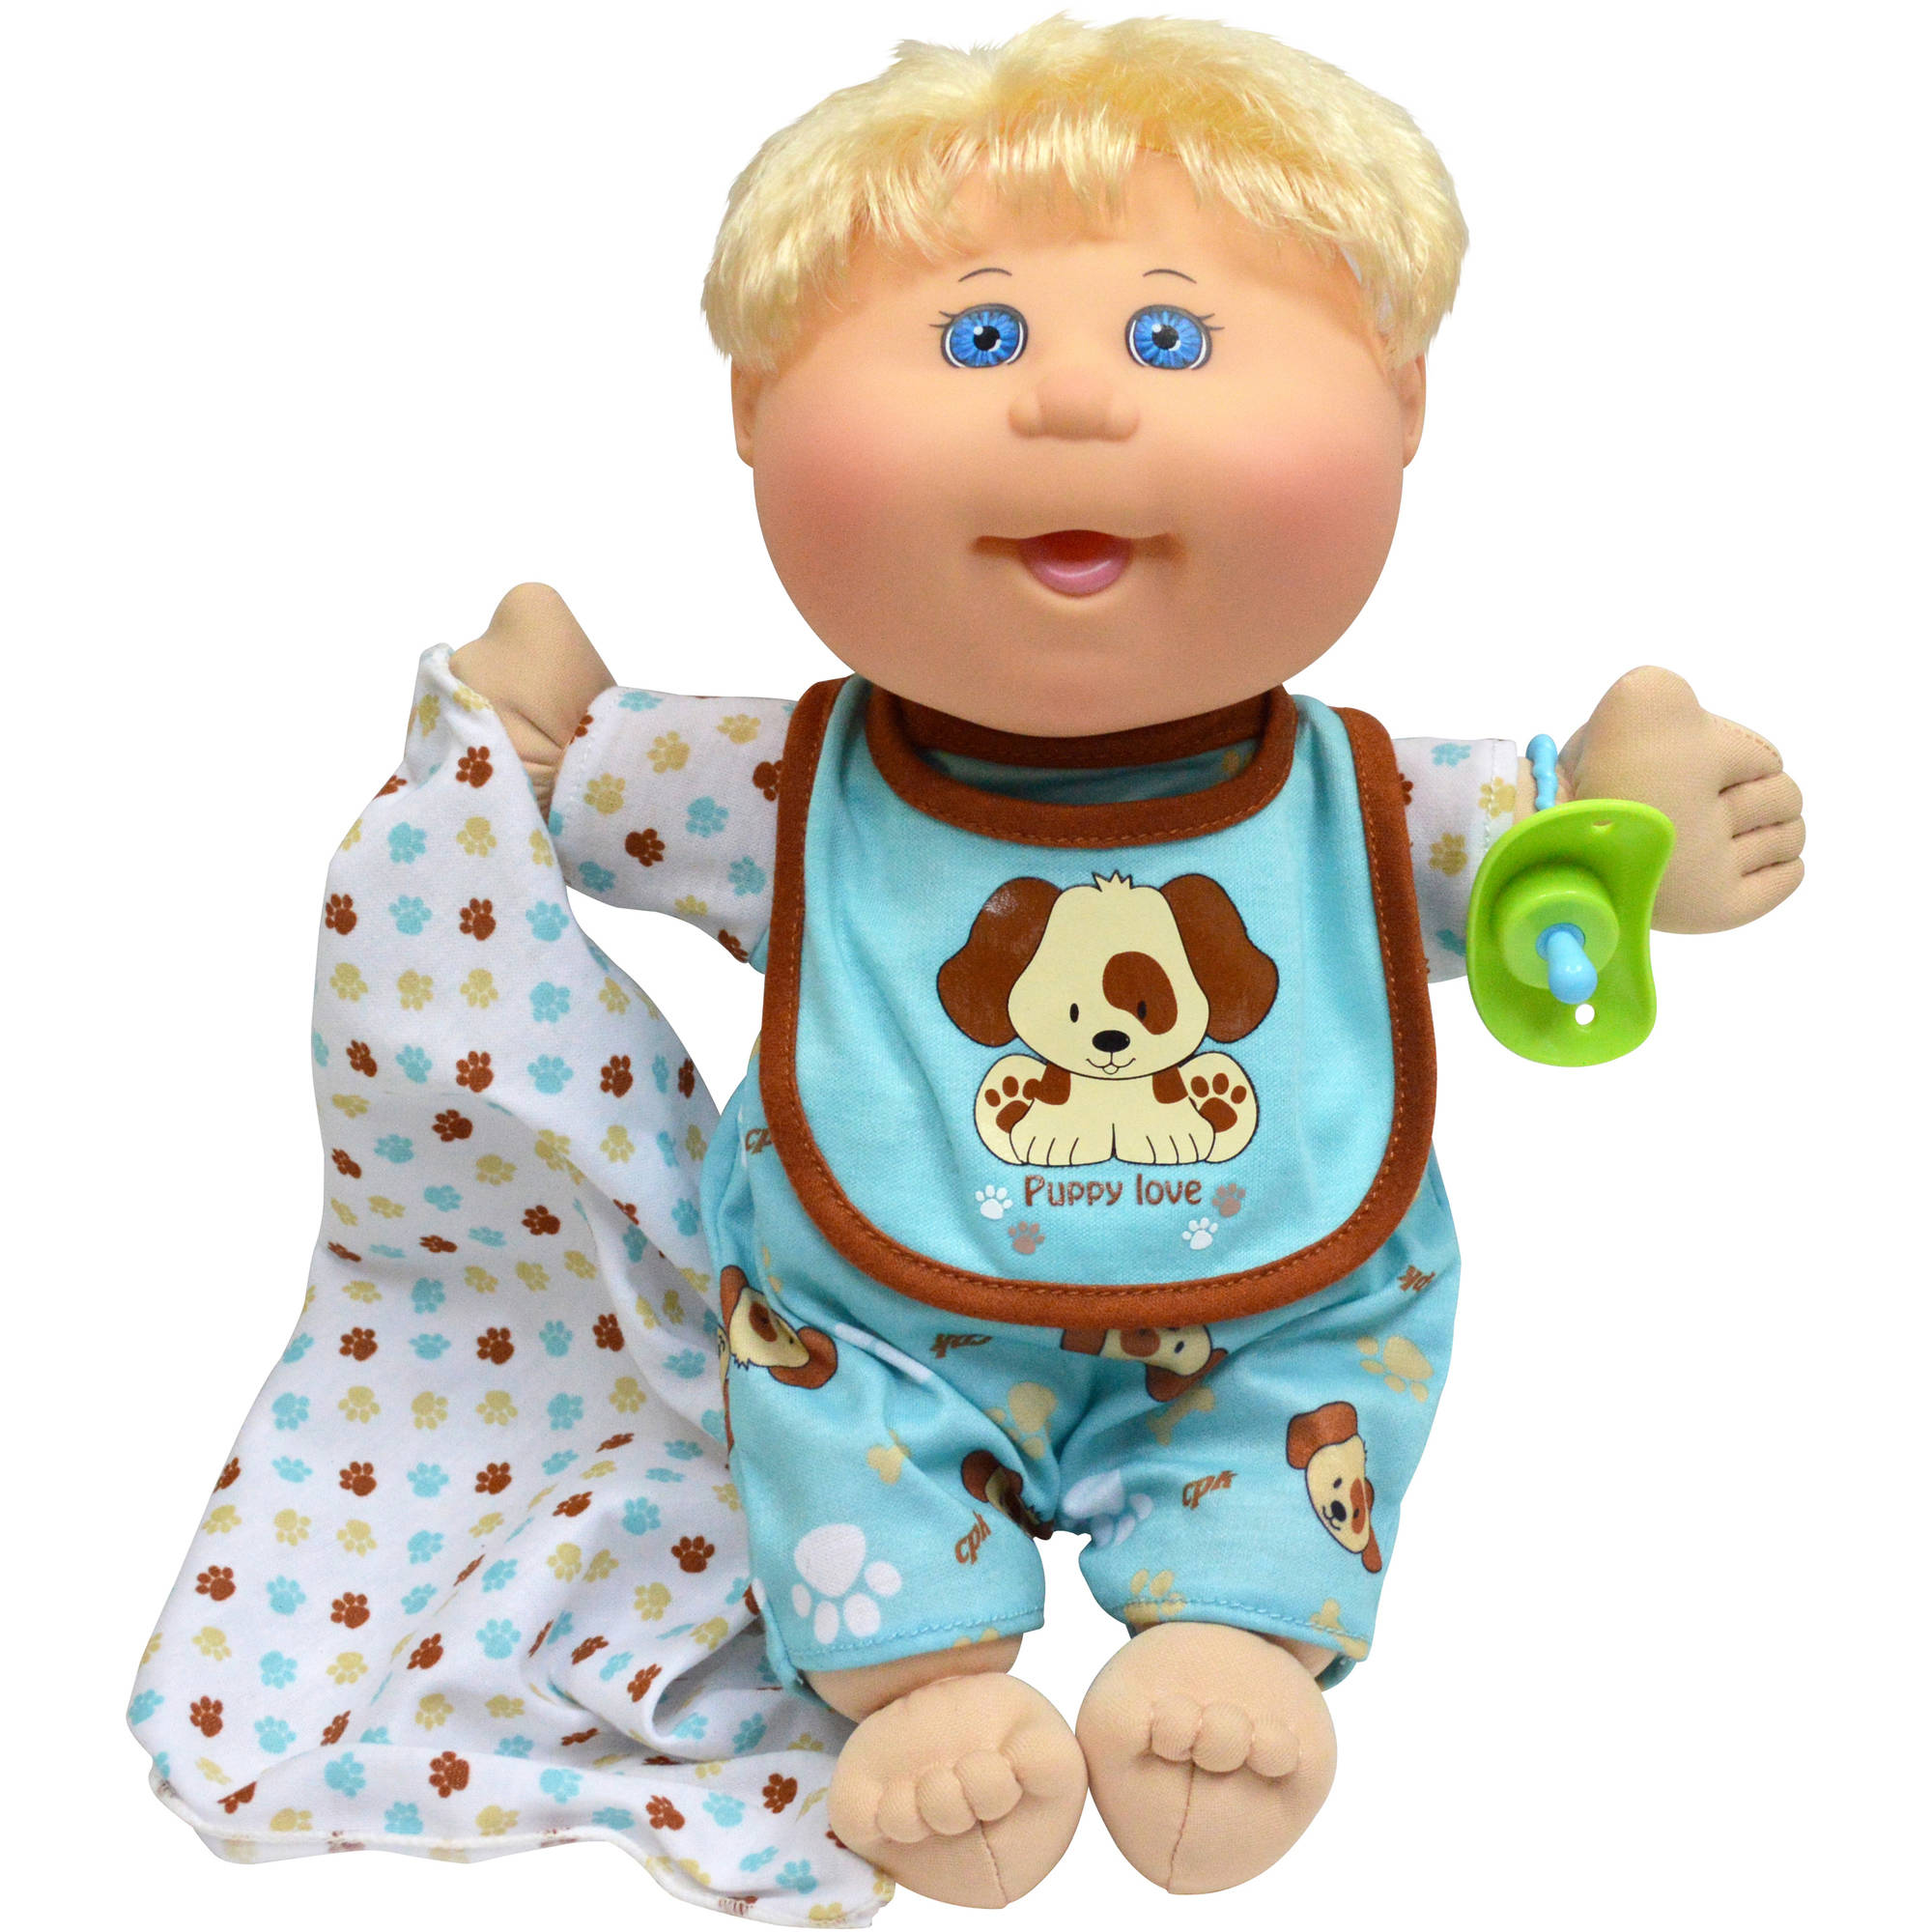 cabbage patch kids naptime babies doll blonde hair blue eye boy